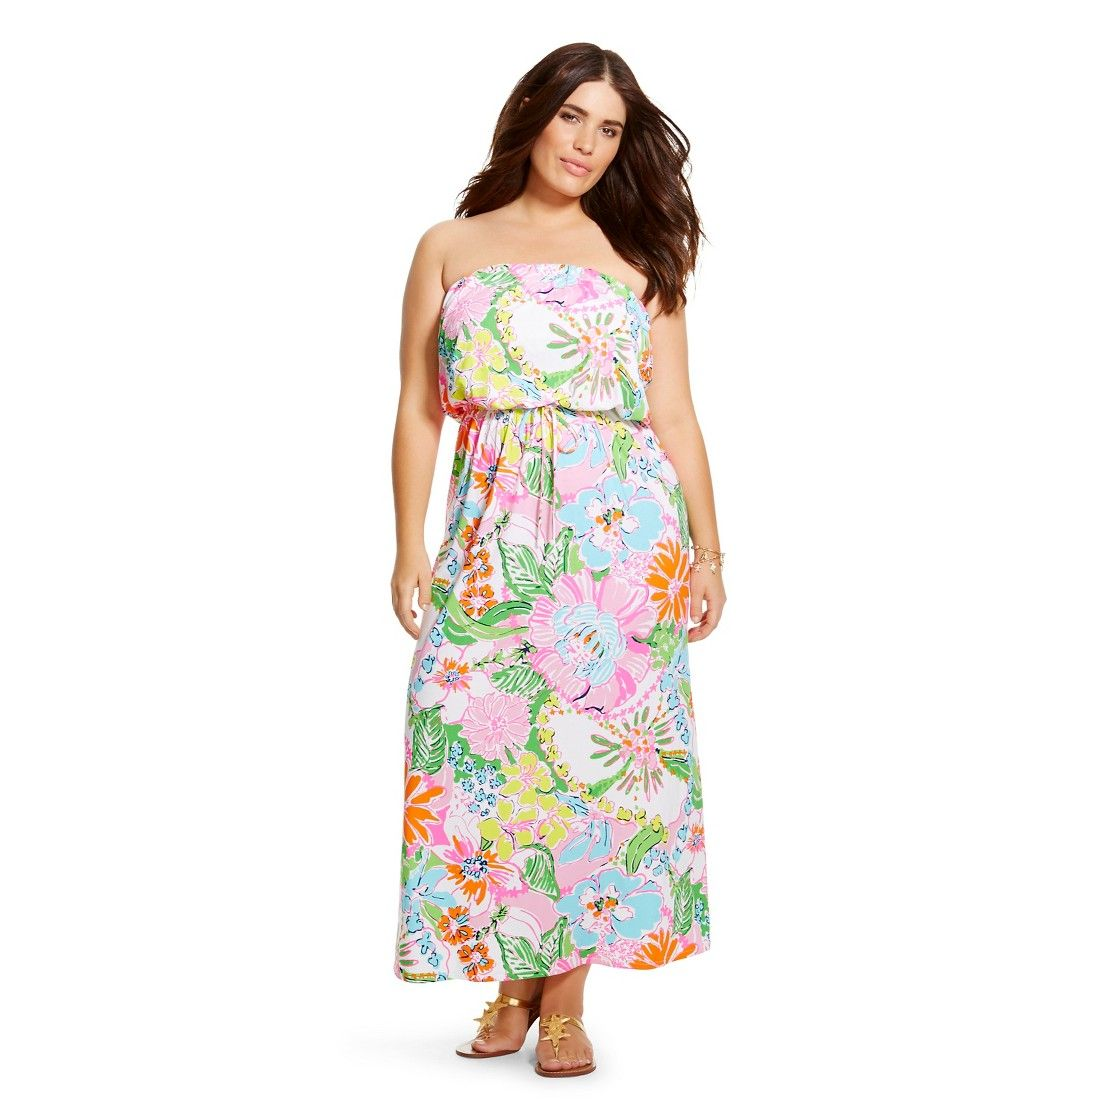 Lilly Pulitzer for Target Women\'s Plus Size Strapless Maxi Dress ...